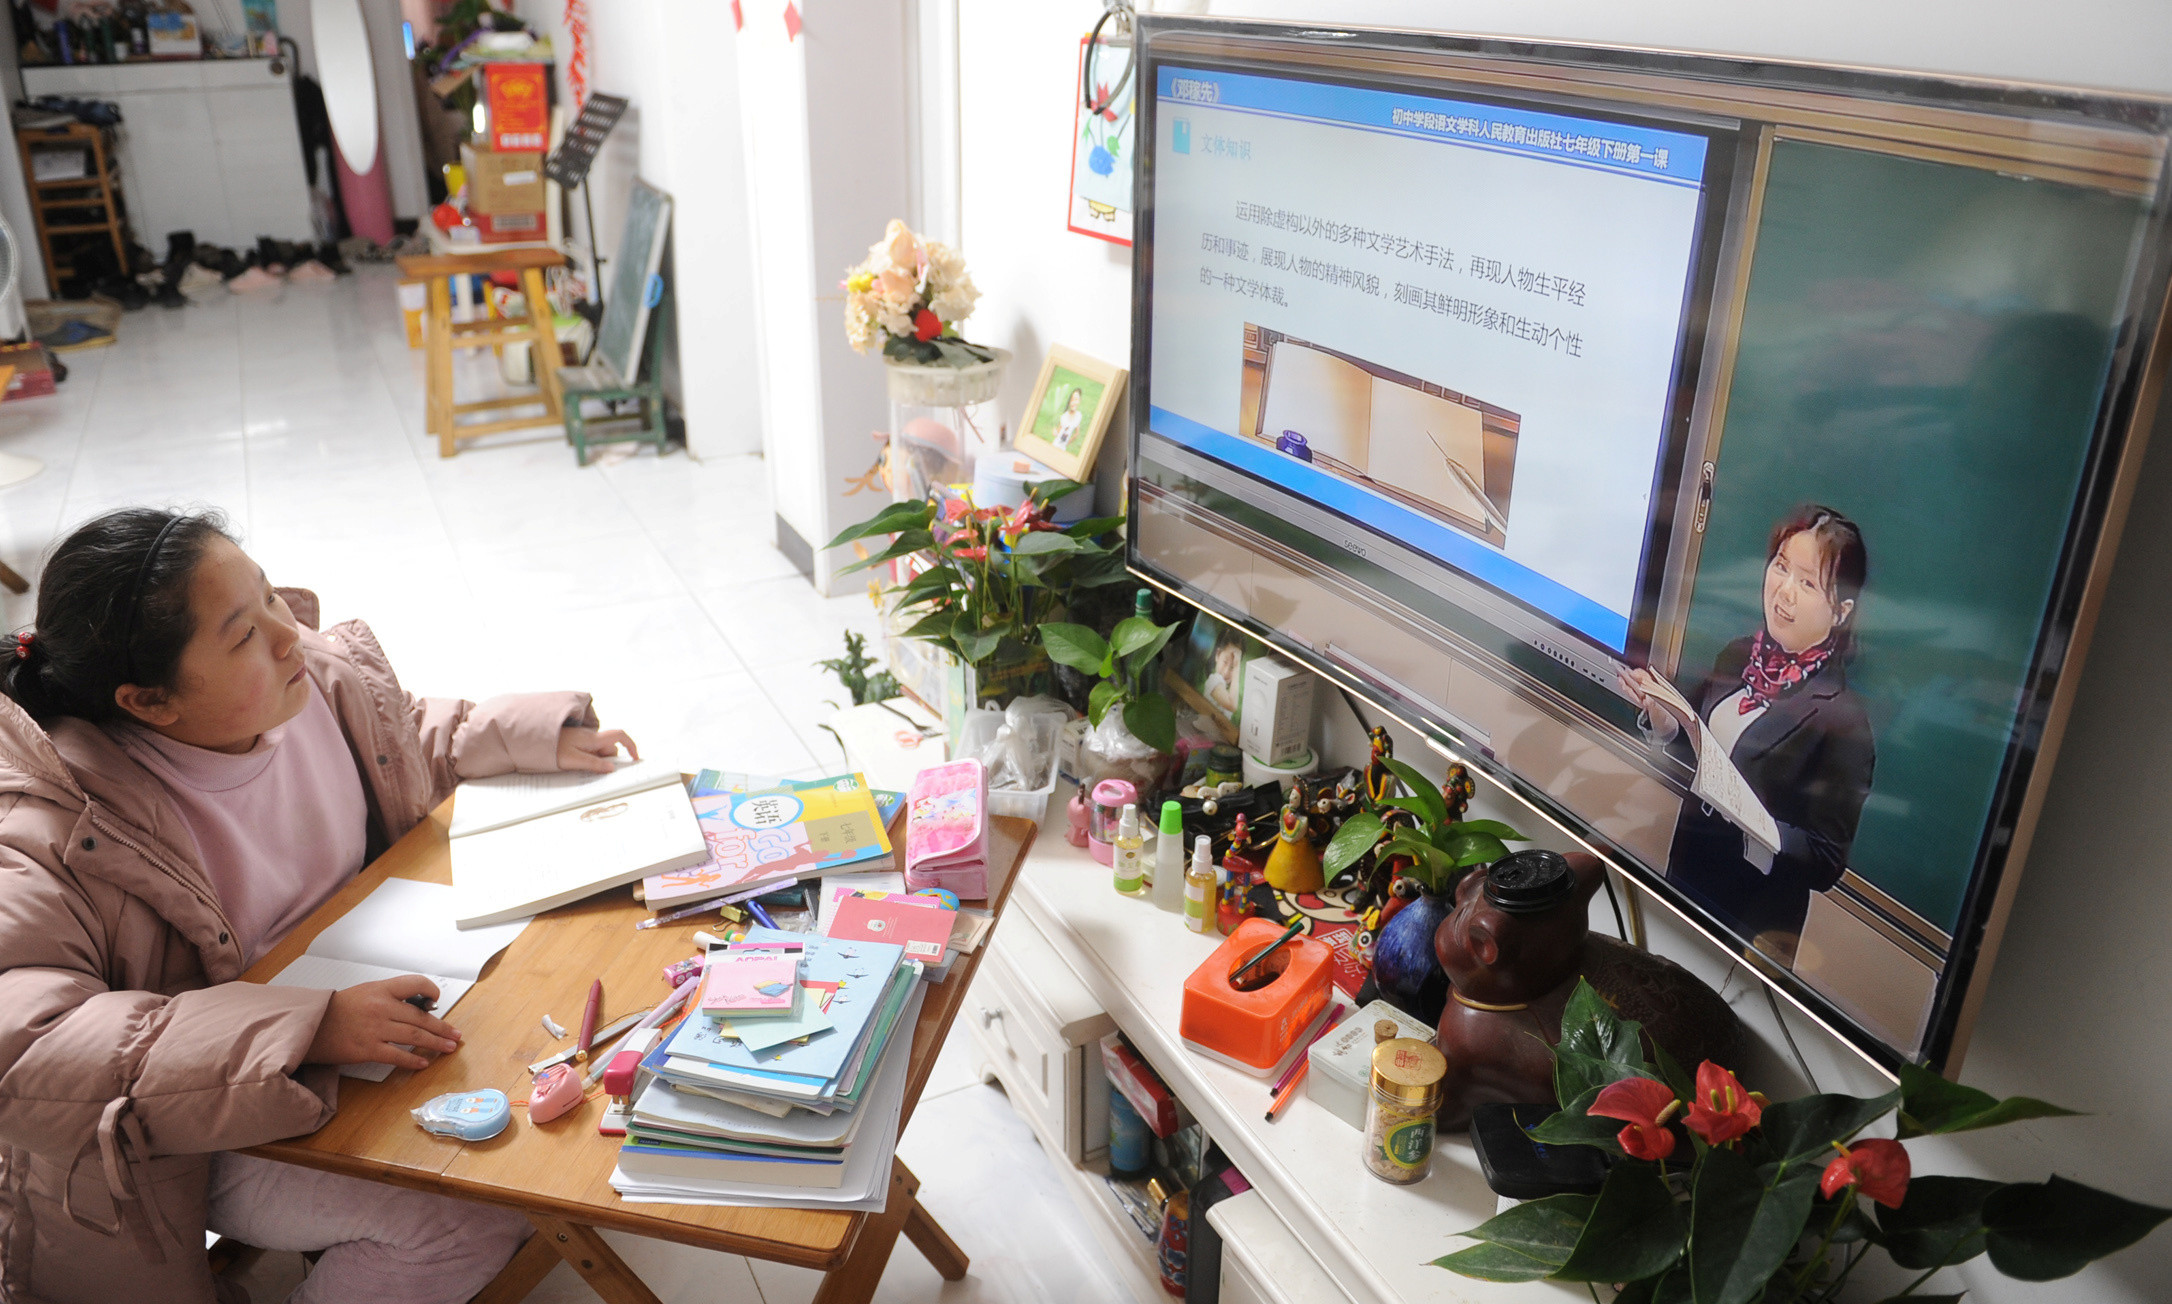 A student attends an online class at home as students' return to school has been delayed due to the novel coronavirus outbreak, in Fuyang, Anhui province, China March 2, 2020. Picture taken March 2, 2020. China Daily via REUTERS ATTENTION EDITORS - THIS IMAGE WAS PROVIDED BY A THIRD PARTY. CHINA OUT. - RC23CF92UB8C